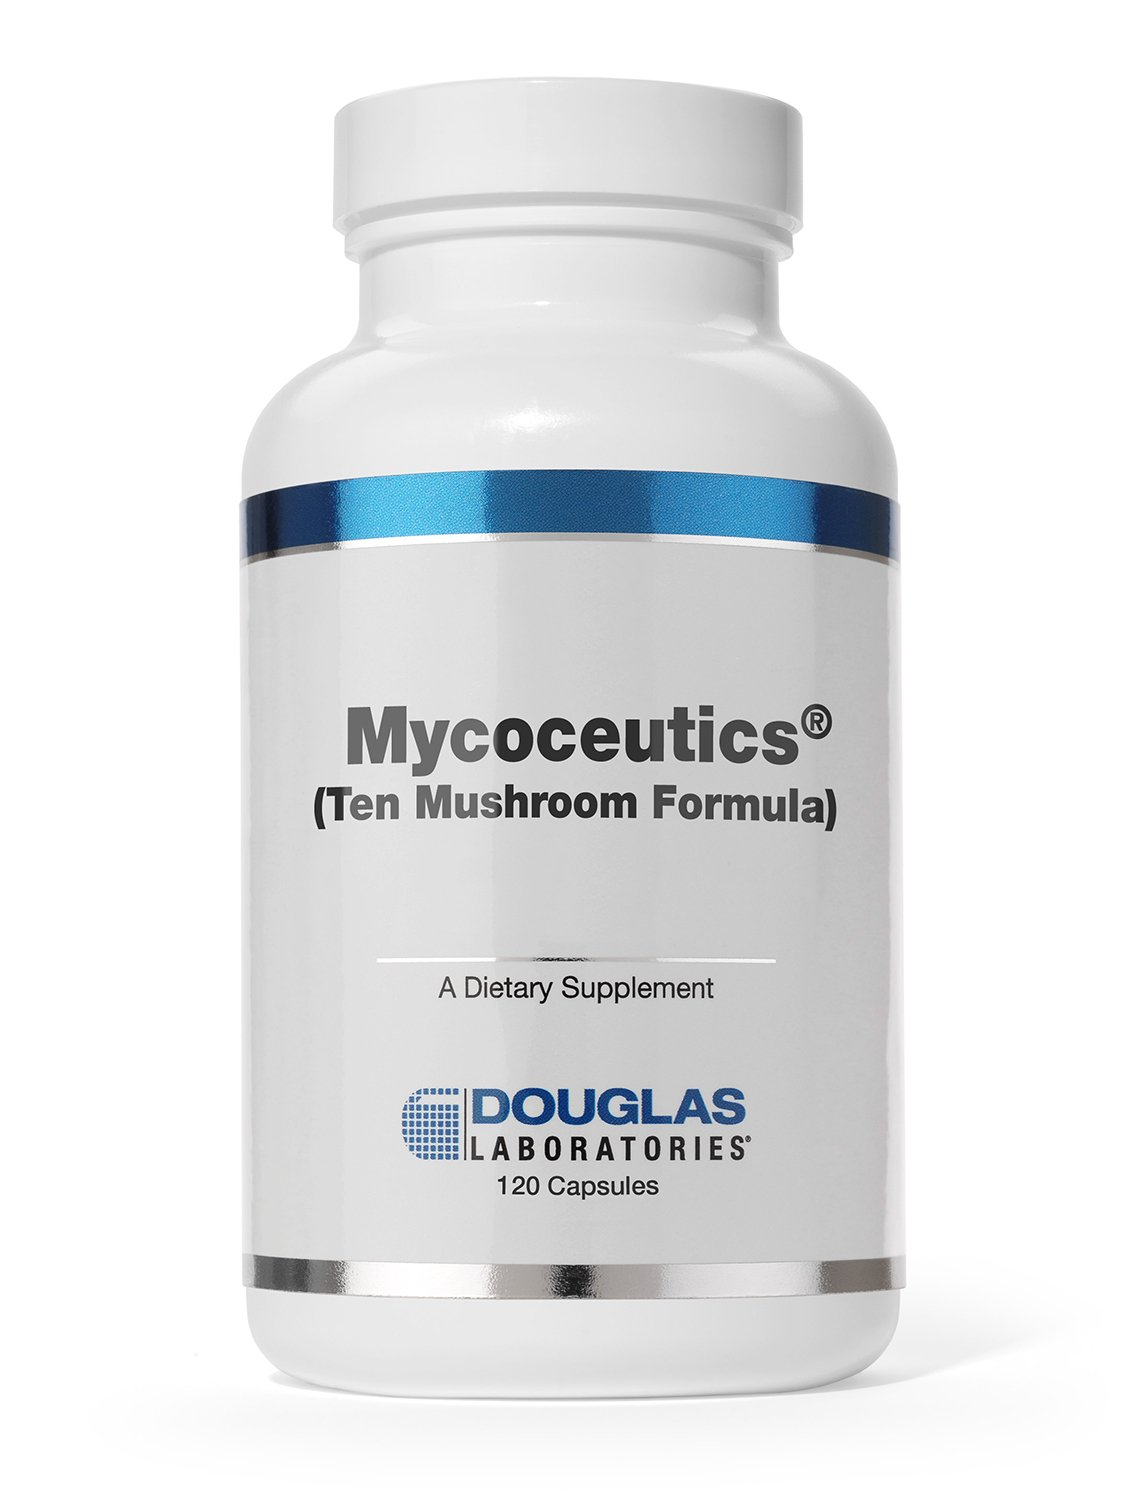 Douglas Laboratories – Mycoceutics – Mushrooms to Support and Enhance Immune System Function* – 120 Capsules